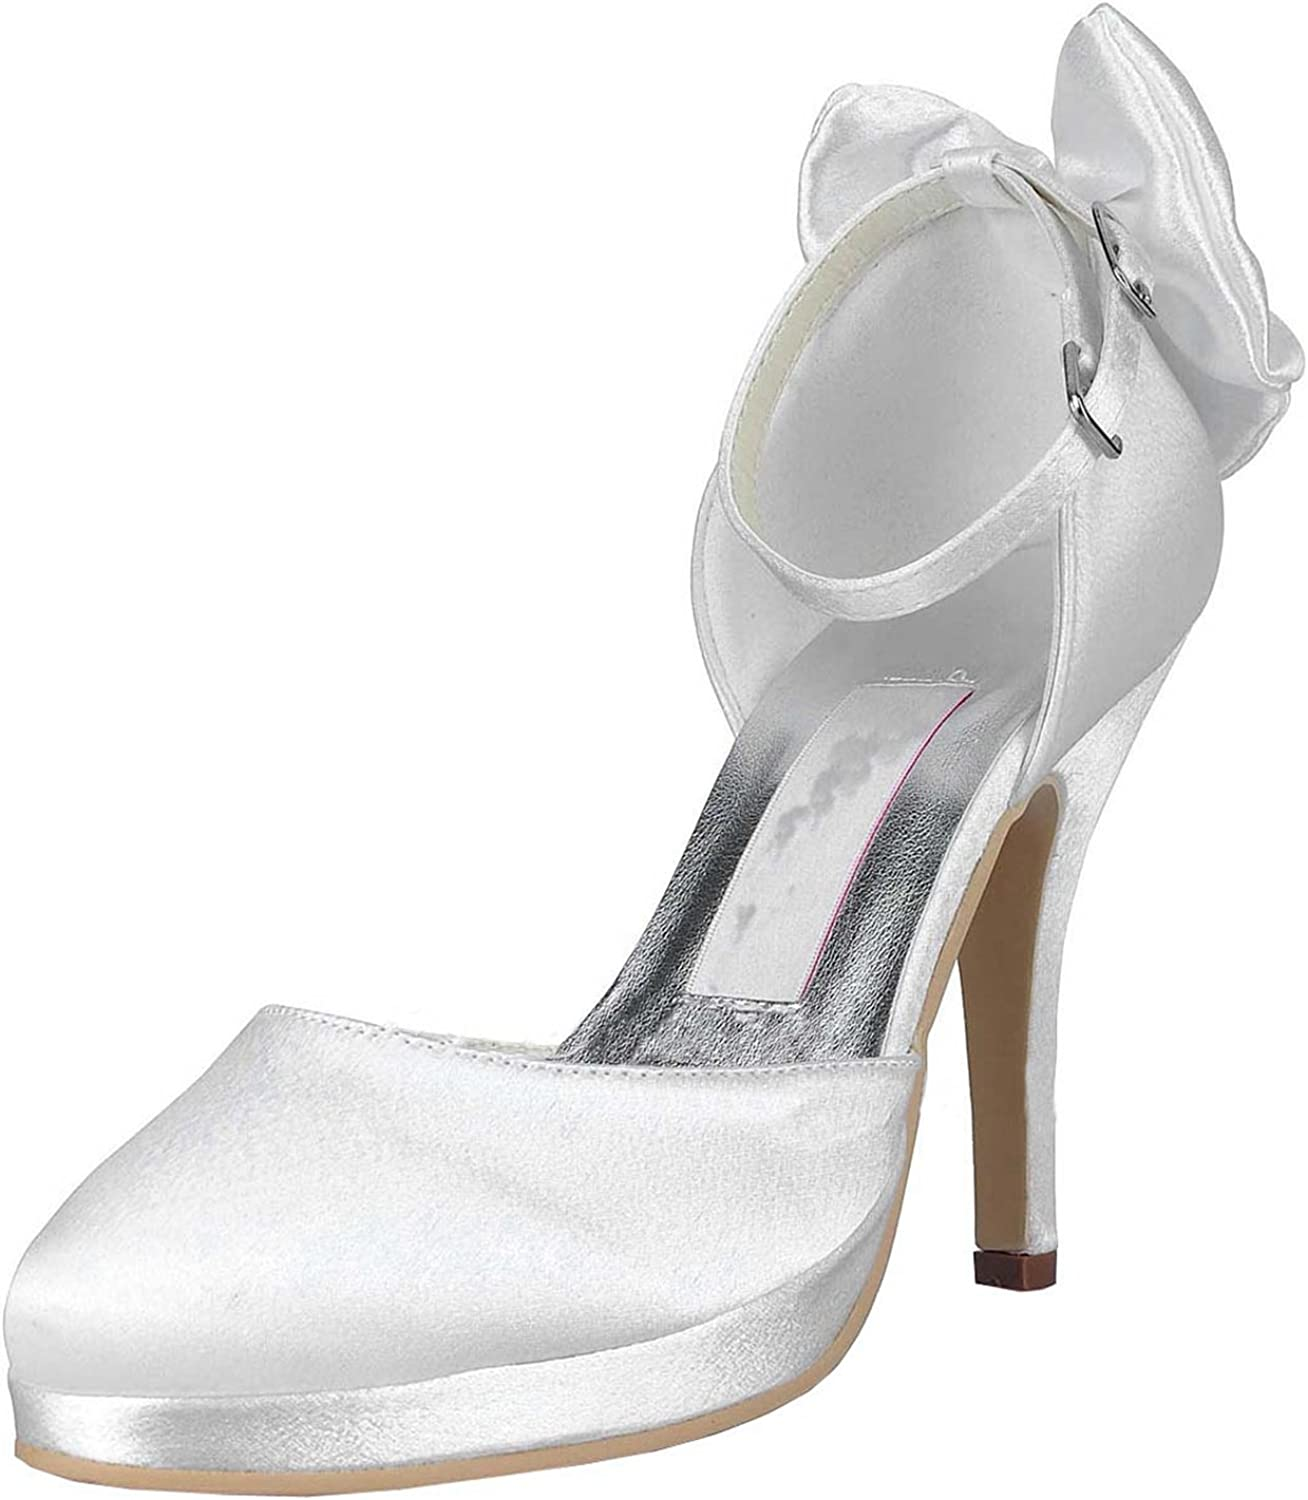 Minishion Womens MZ546 Round Toe Ankle Strap Ivory Satin Wedding Party Evening Prom Pumps shoes 11 M US